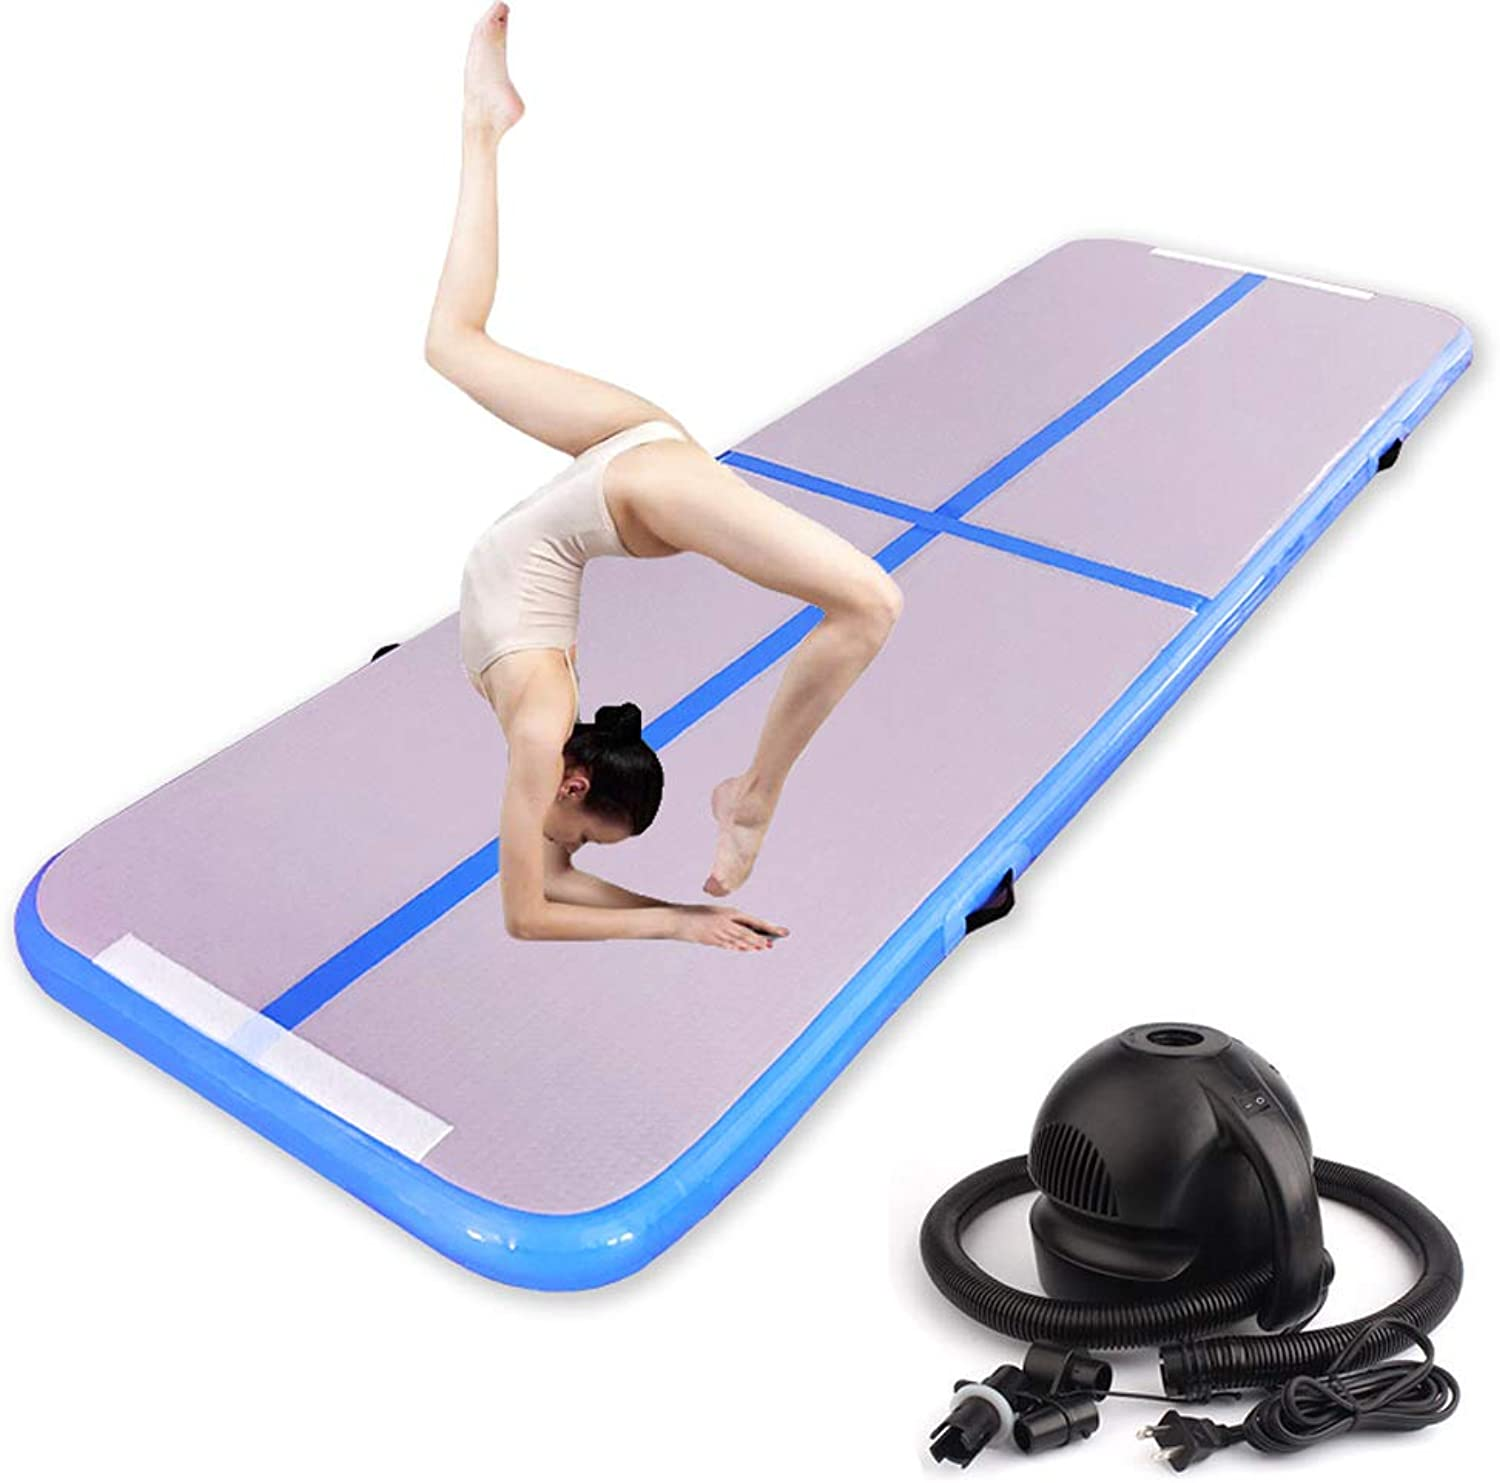 Air Track Tumbling Mat, Gymnastics Mat with Pump and Carry Bag, Inflatable Yoga Mat Air Mattress for Gym, Perfect for Acro Classes or Home Use 118x40x4inch